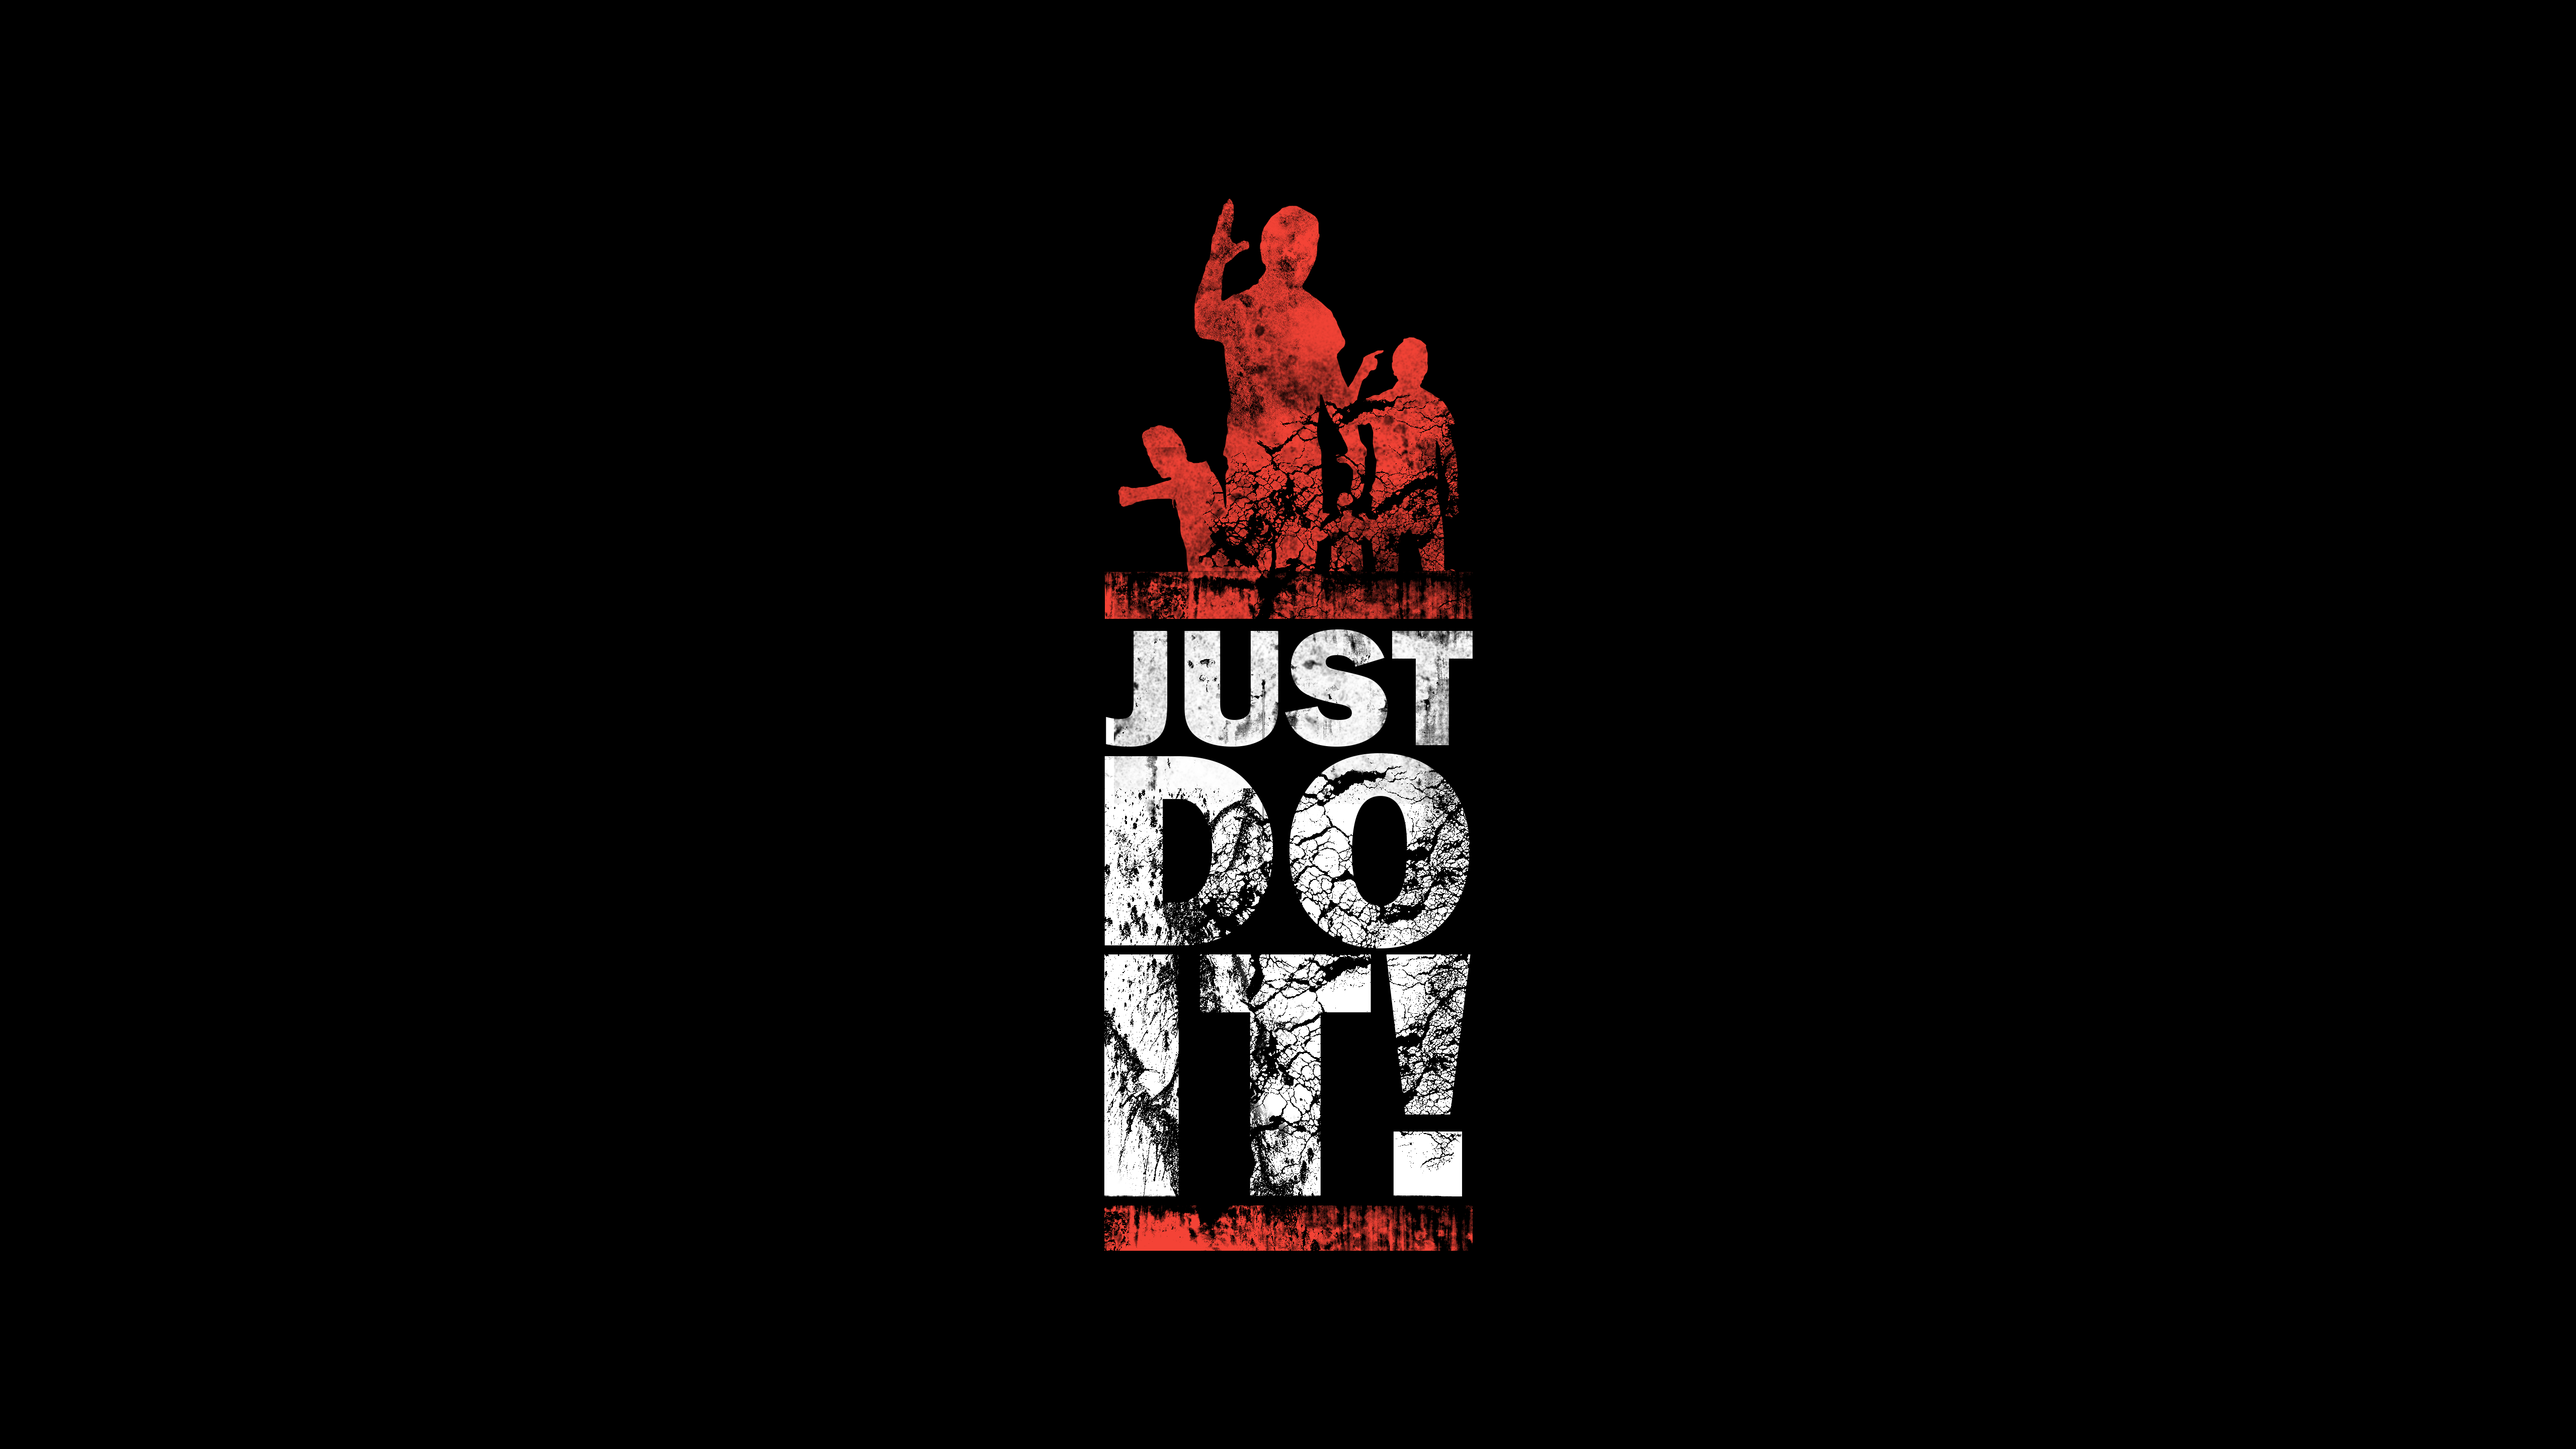 Just Do It Wallpaper Hd Posted By Sarah Mercado